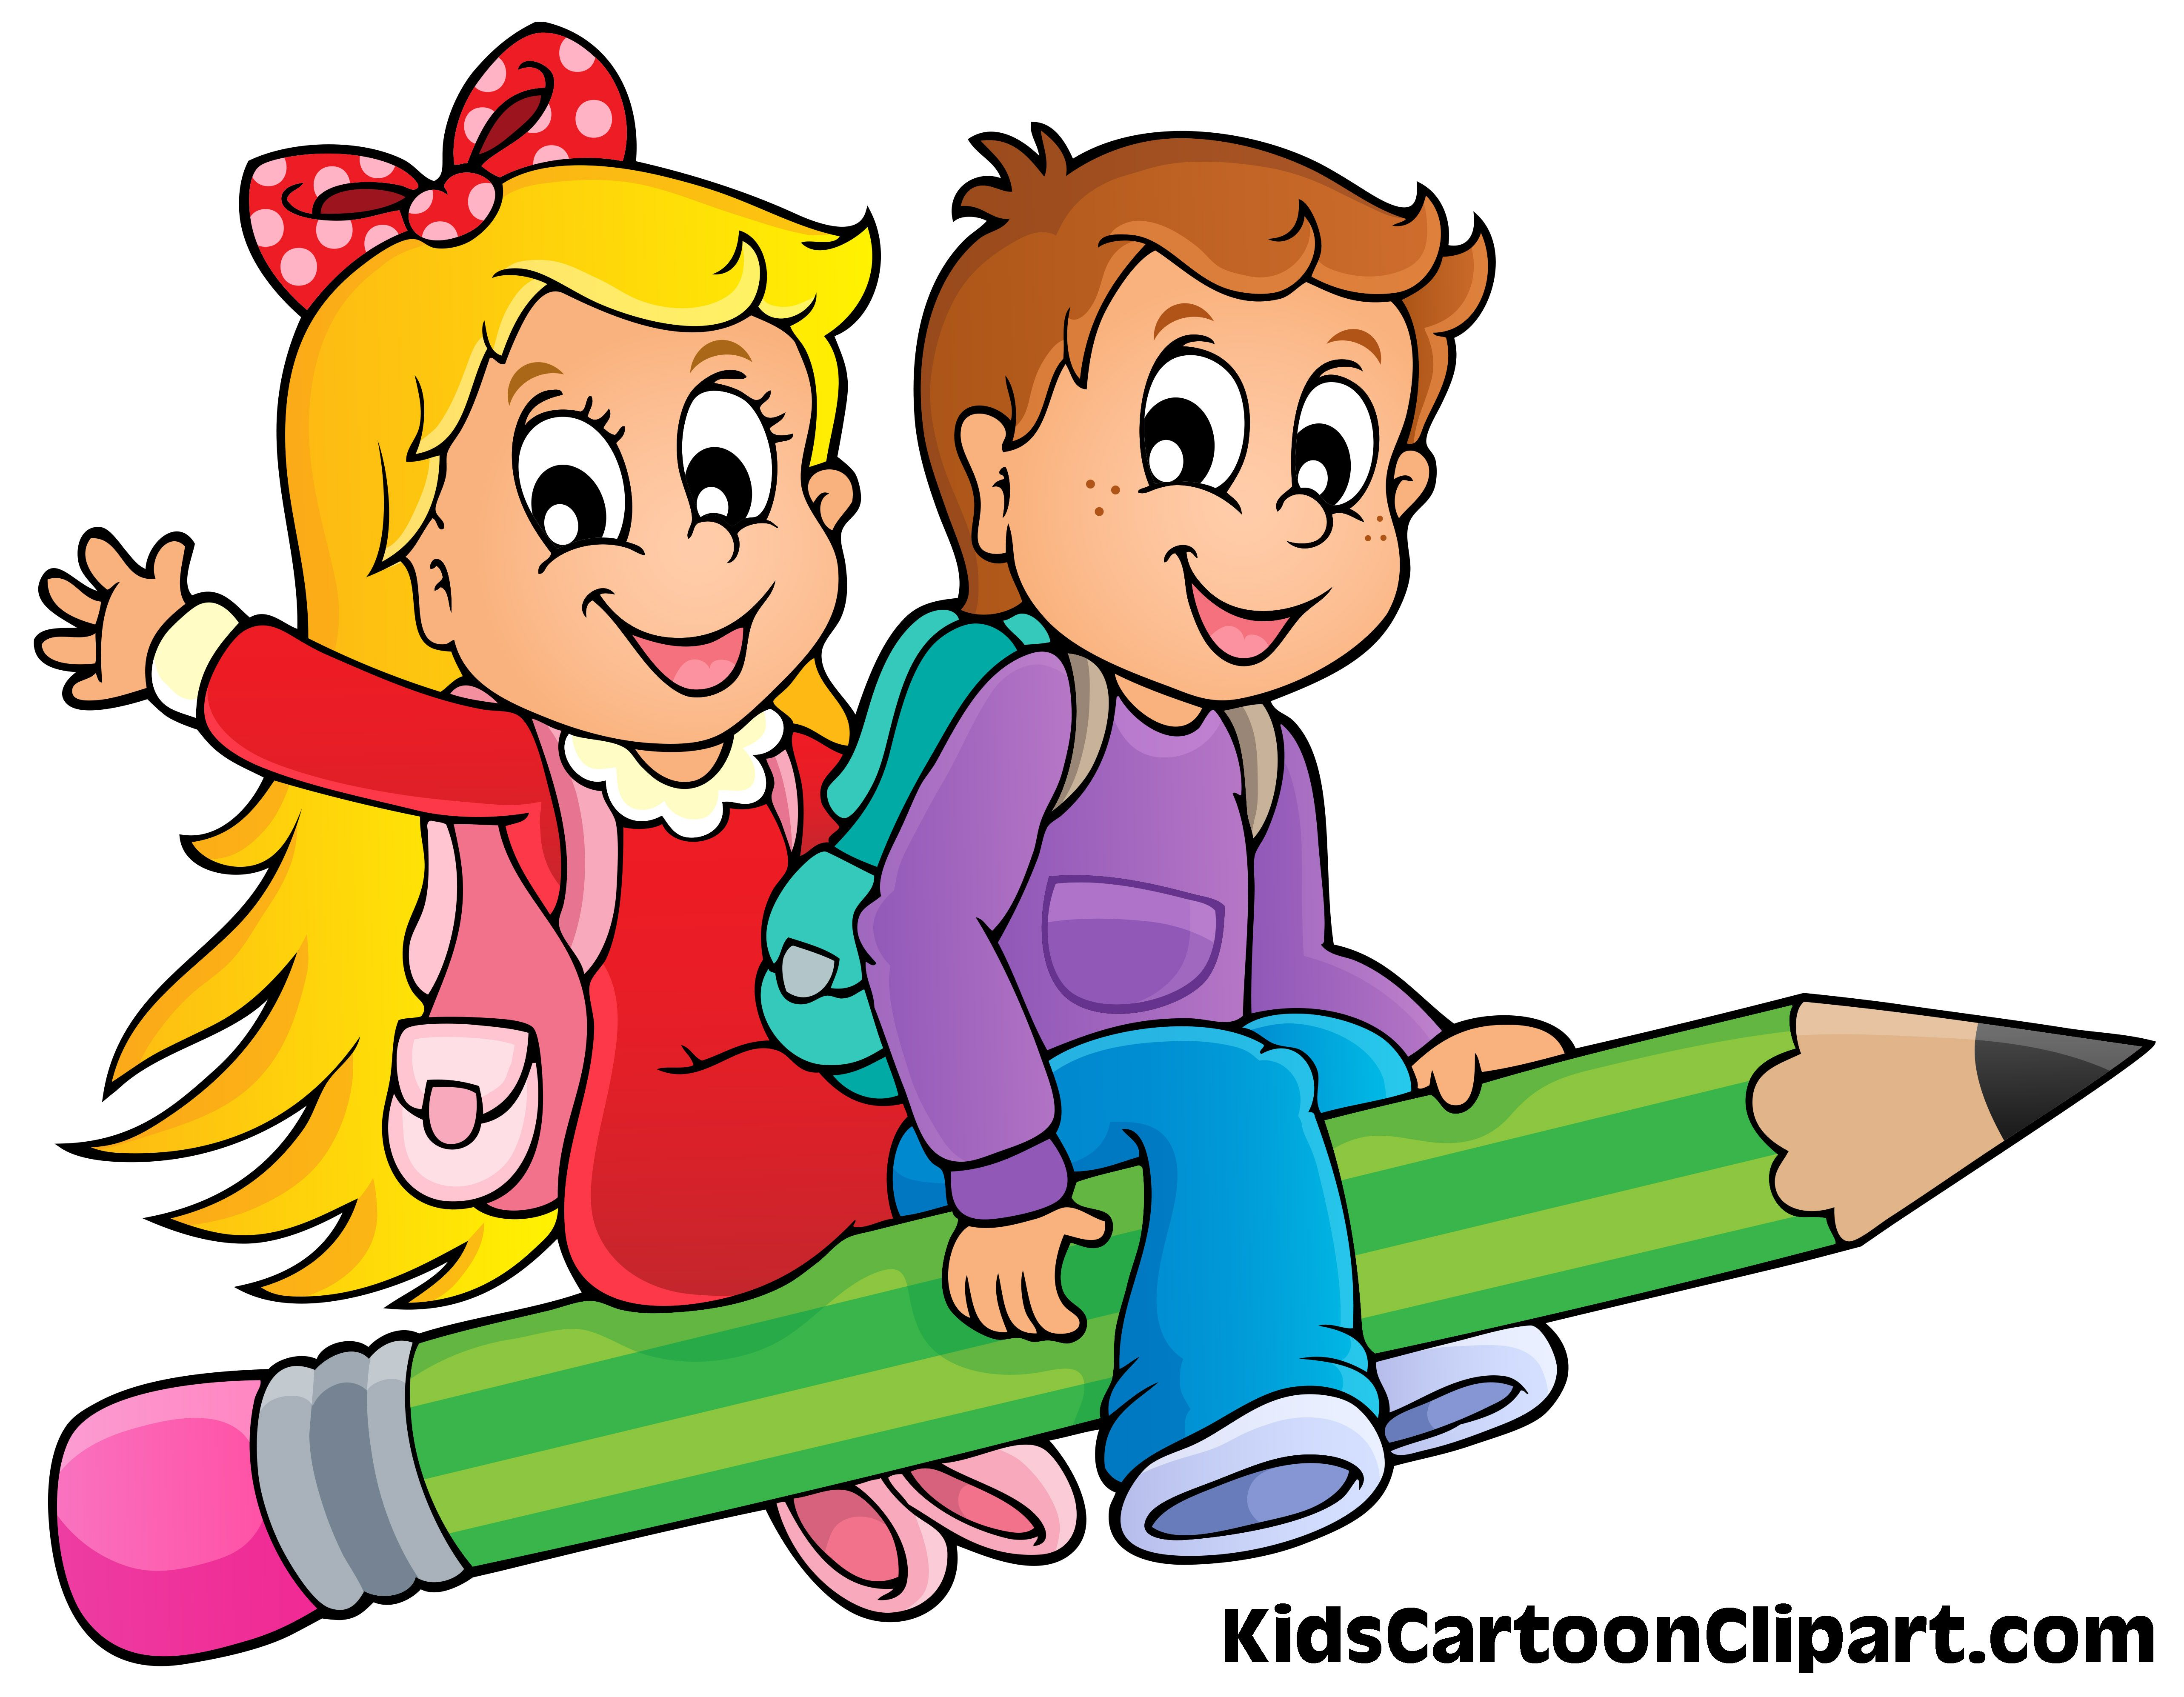 A Cute Boy And Girl Cartoon Flying On Pencil With School